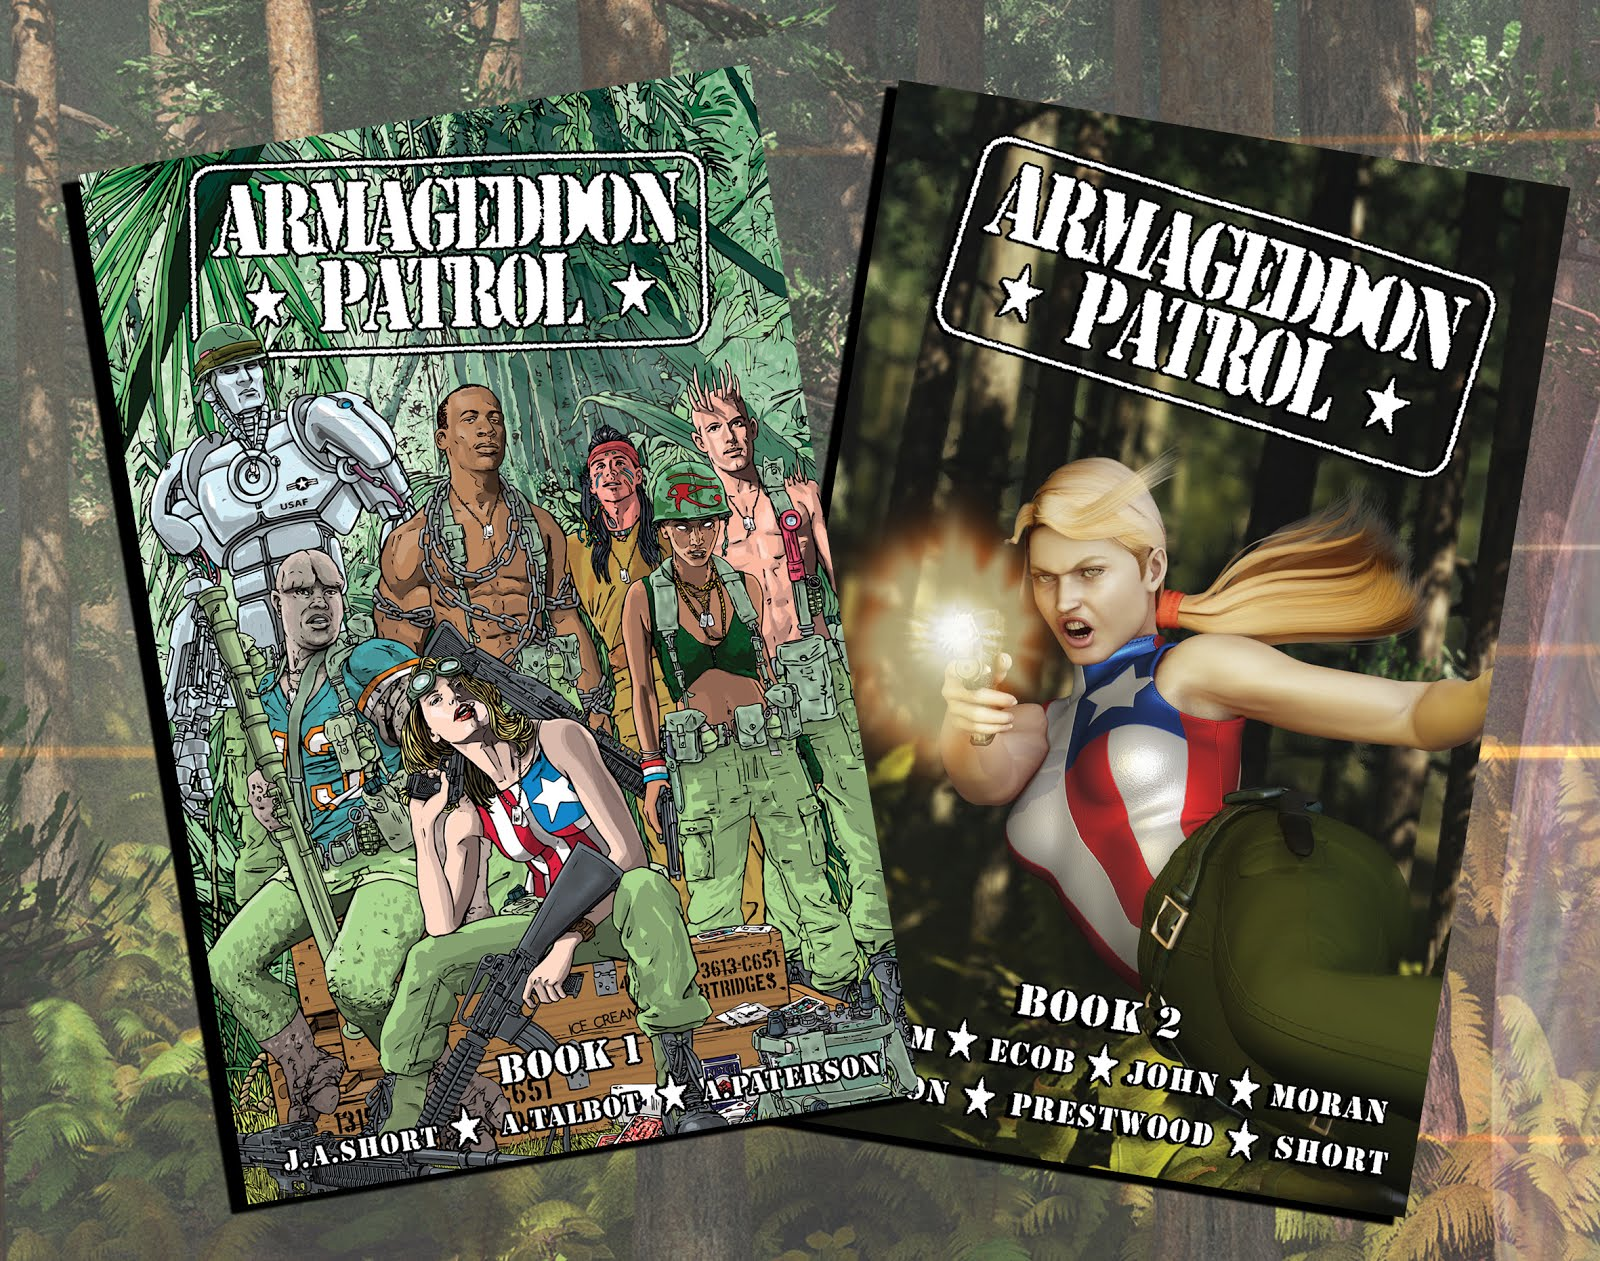 Buy ARMAGEDDON PATROL BOOKS 1 + 2 TOGETHER below!